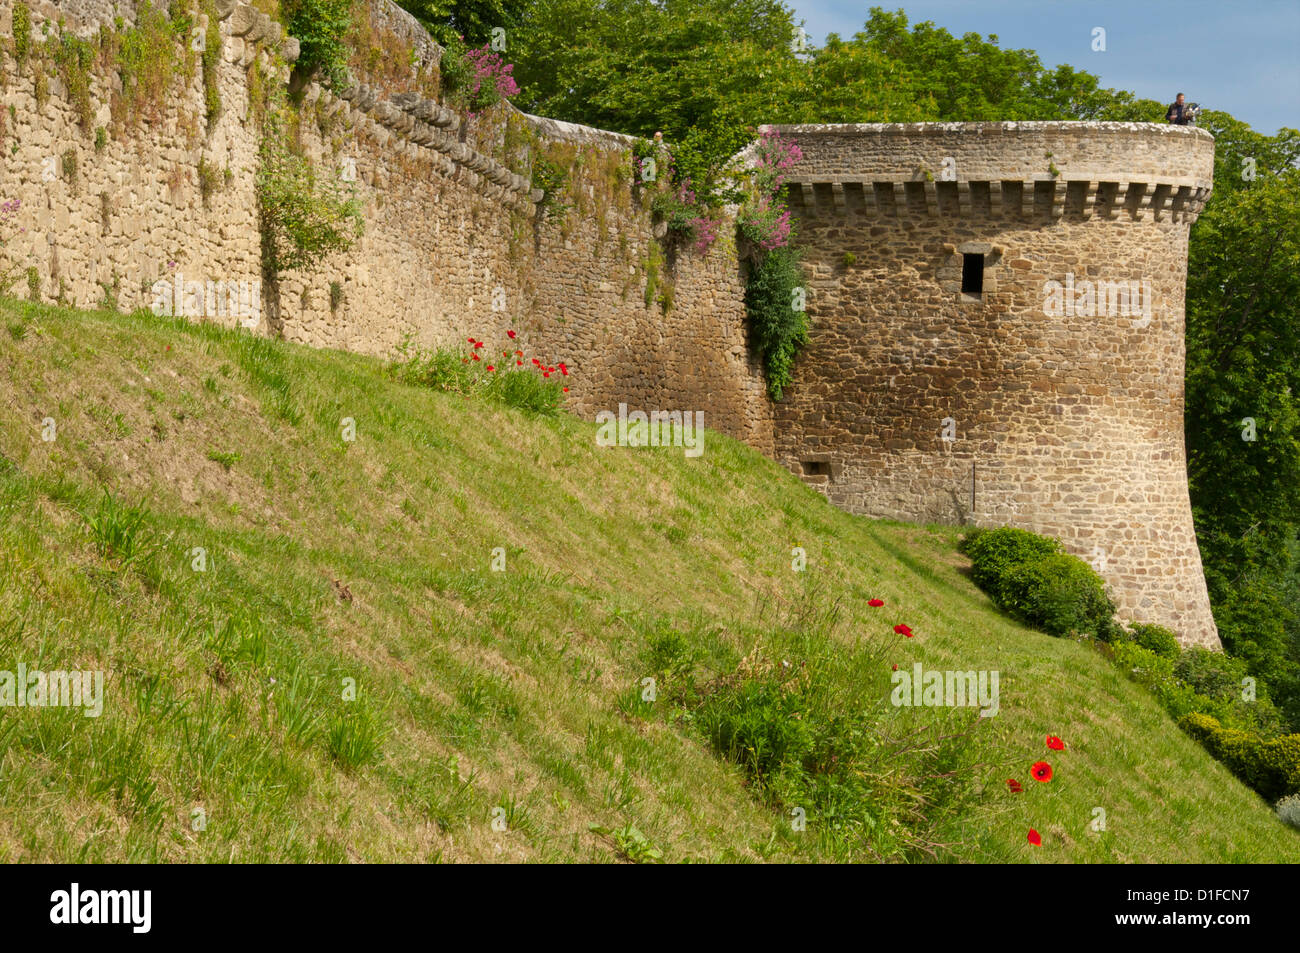 Town ramparts dating from the 13th and 15th centuries and tower, Old Town, Dinan, Brittany, Cotes d'Armor, France, Stock Photo